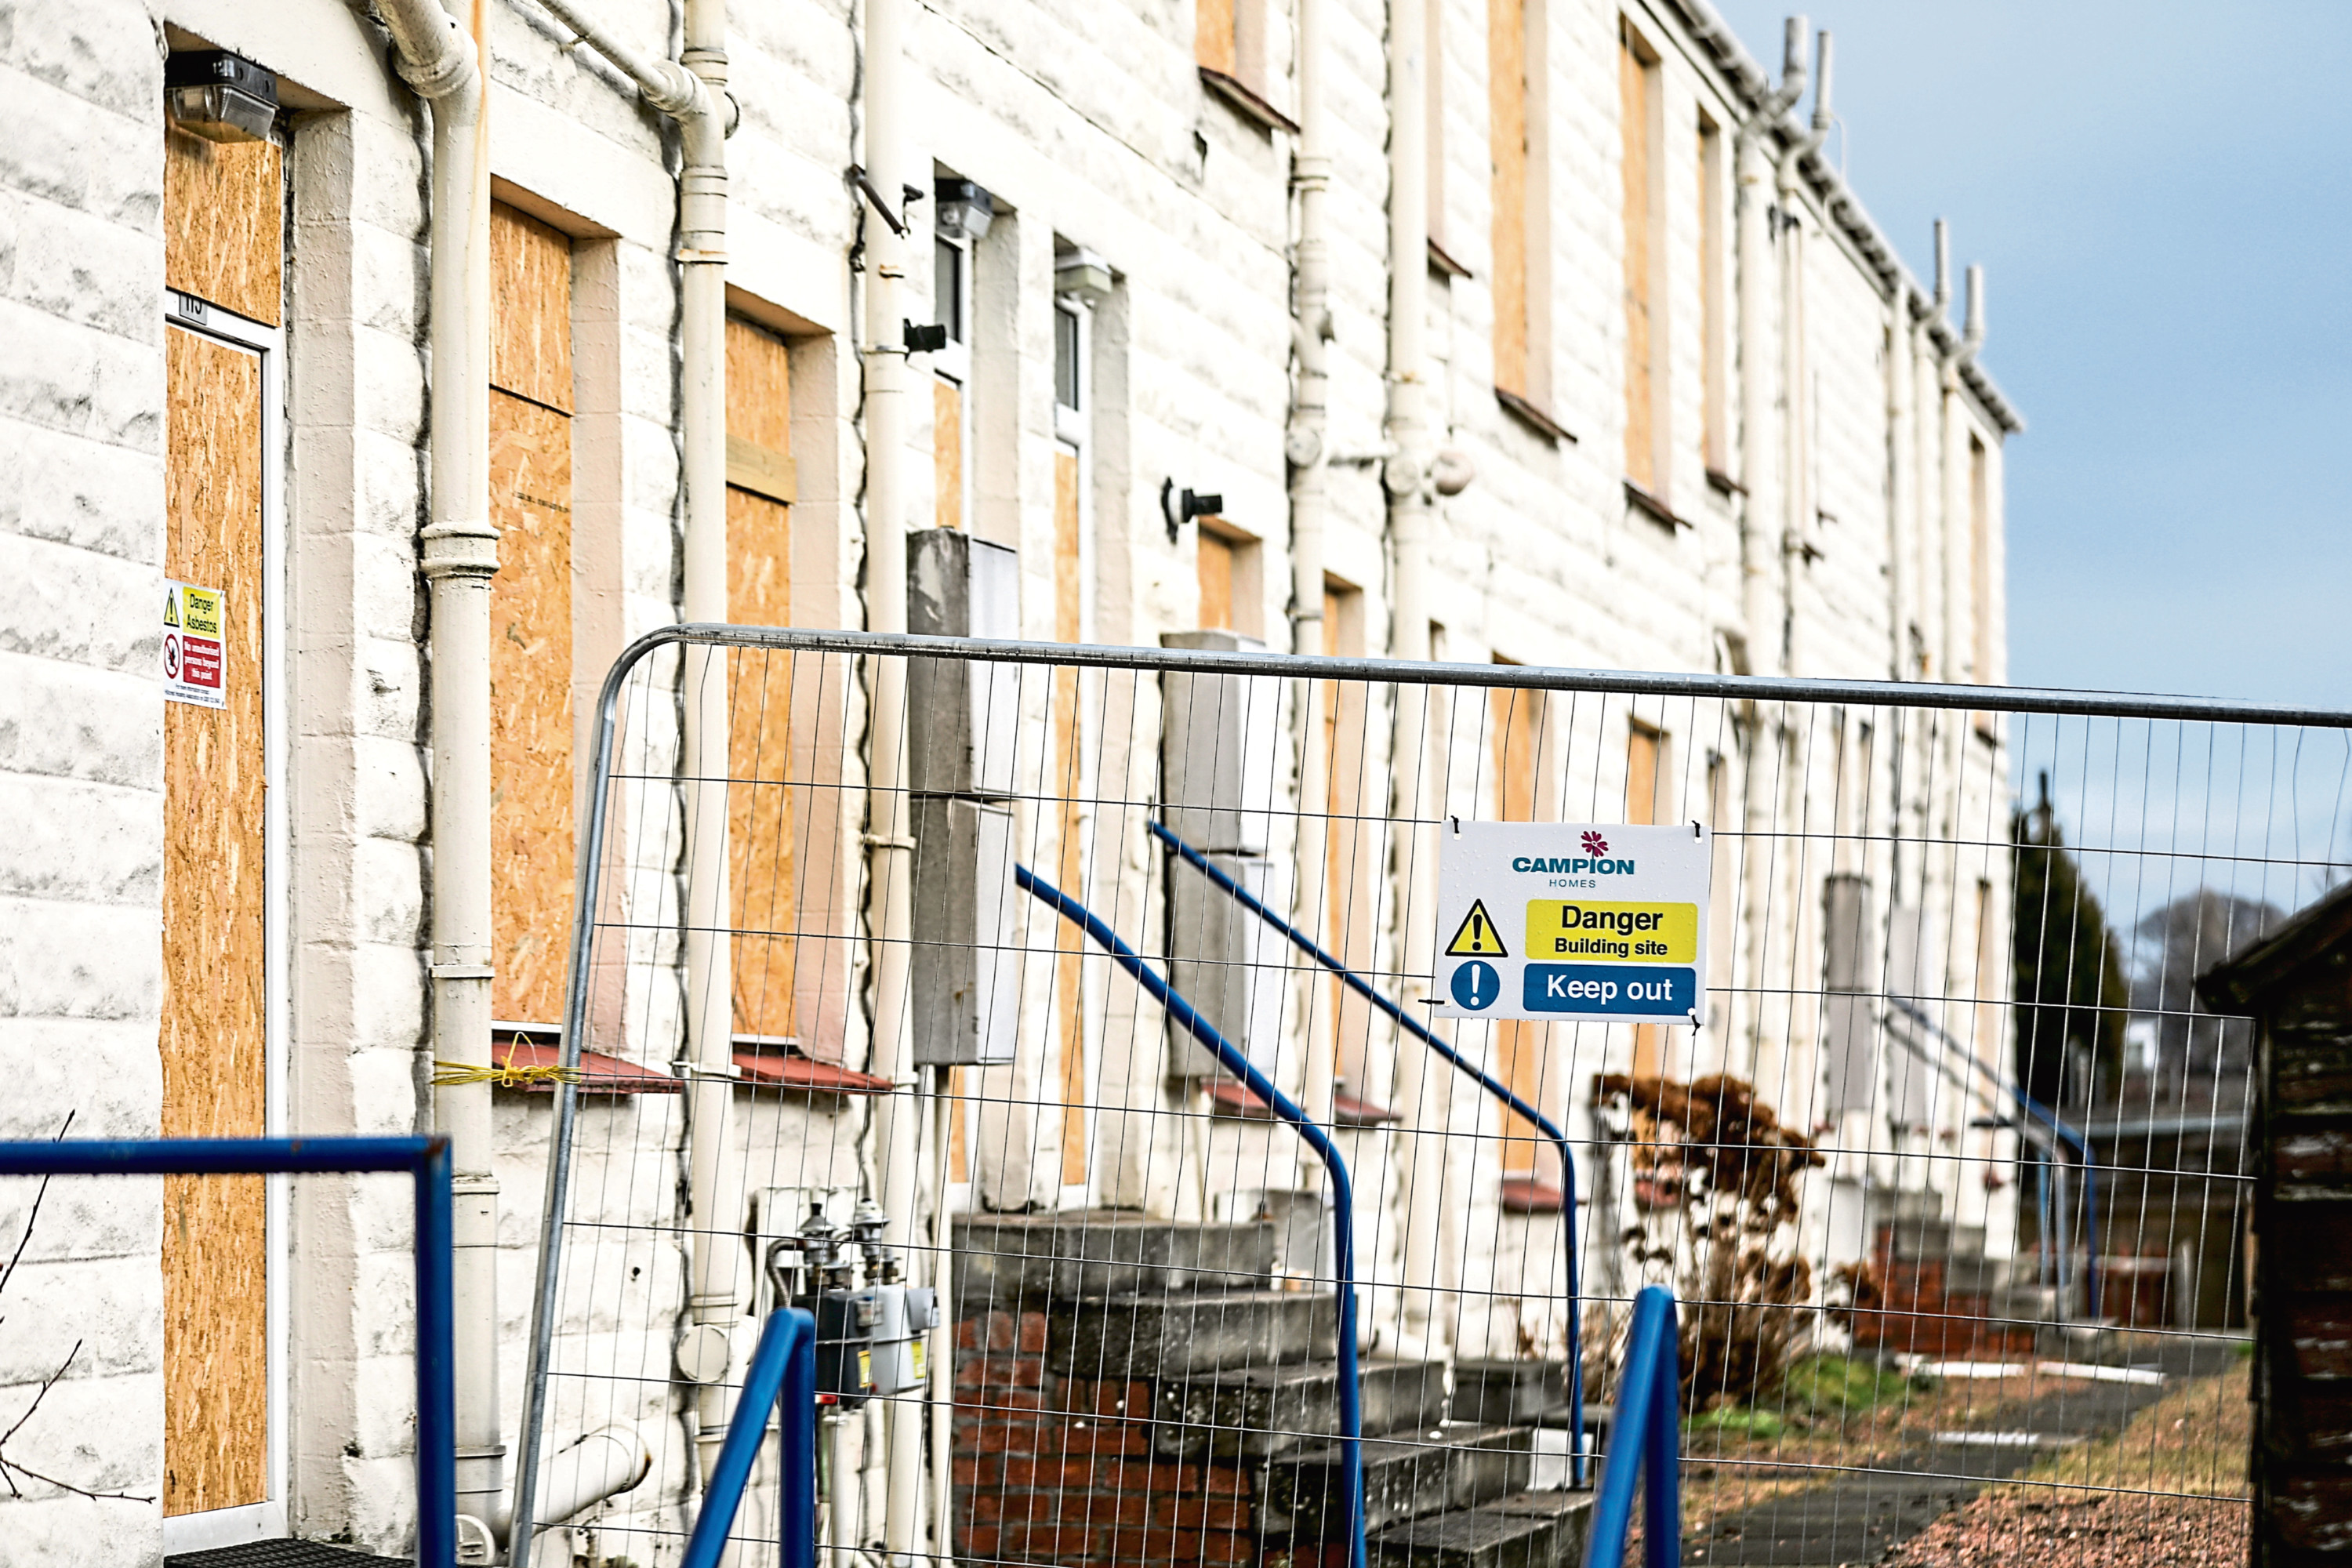 Hillcrest's boarded-up properties at Ellengowan Drive in Dundee.